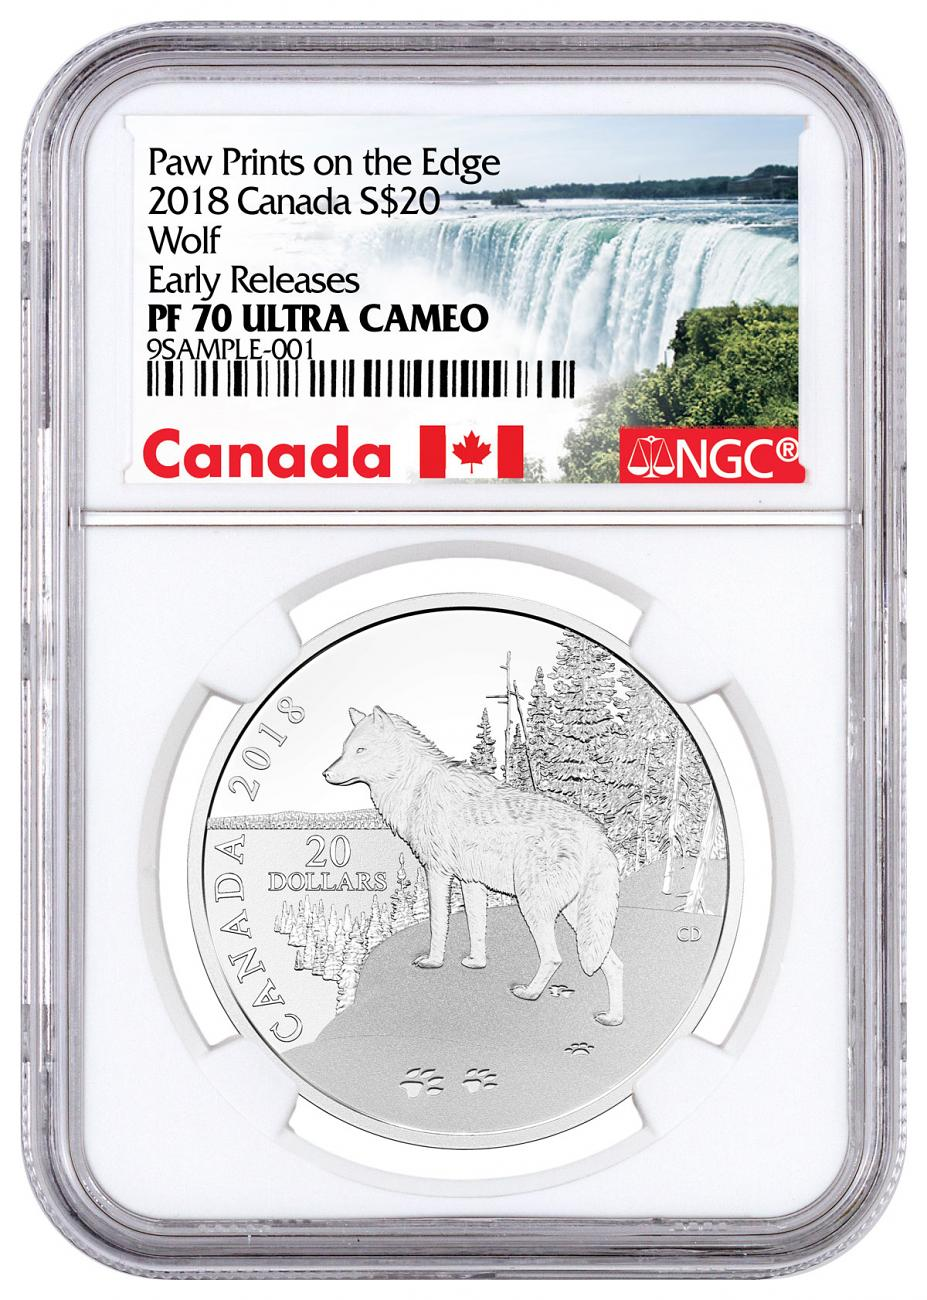 2018 Canada Nature's Impressions - Wolf 1 oz Silver Proof $20 Coin NGC PF70 UC ER Exclusive Canada Label